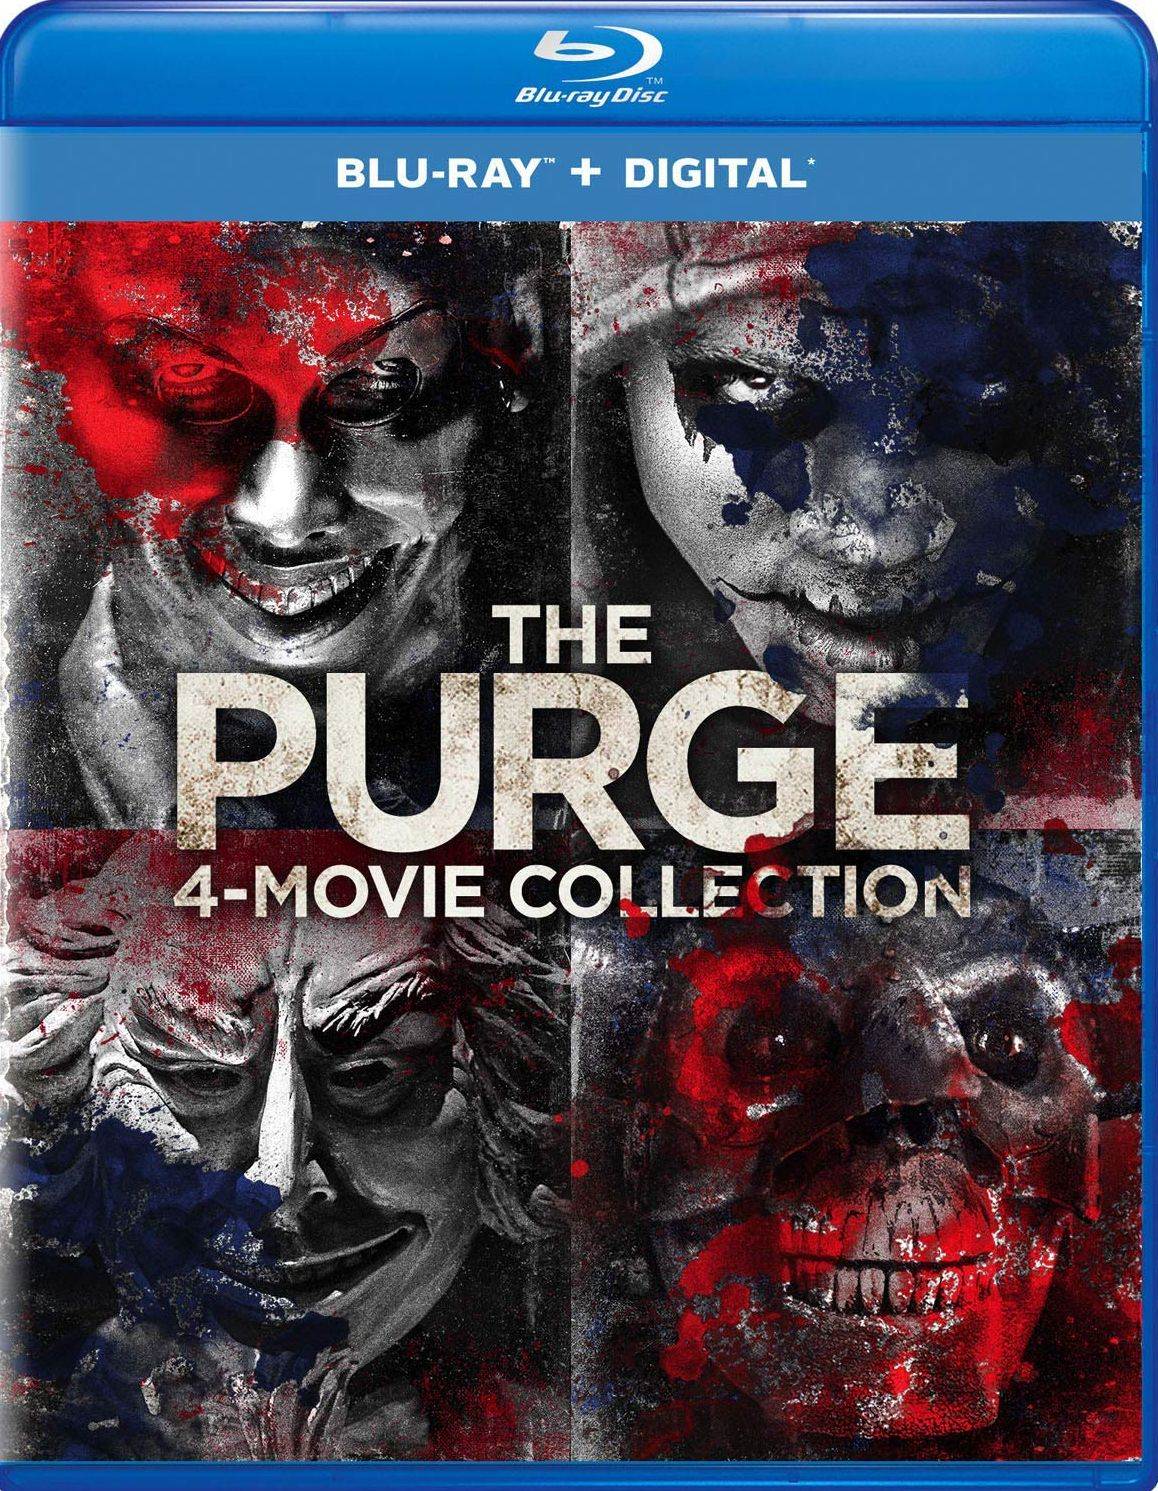 the purge 4-movie collection blu-ray set (universal studios